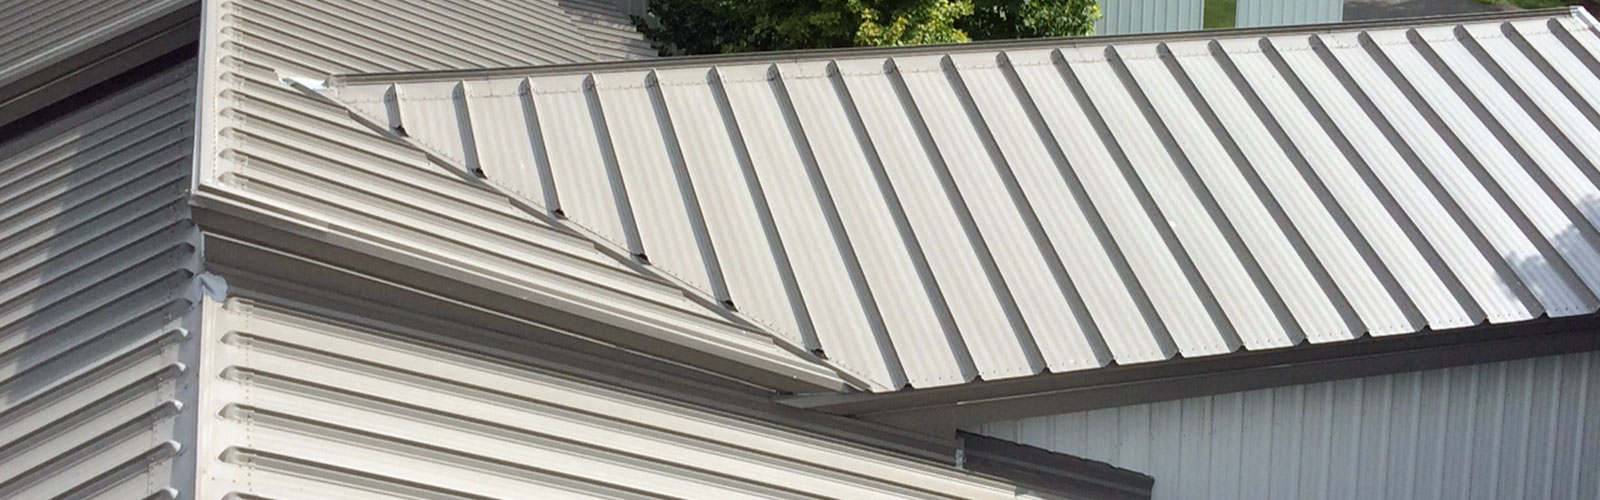 Springer Roofing Images